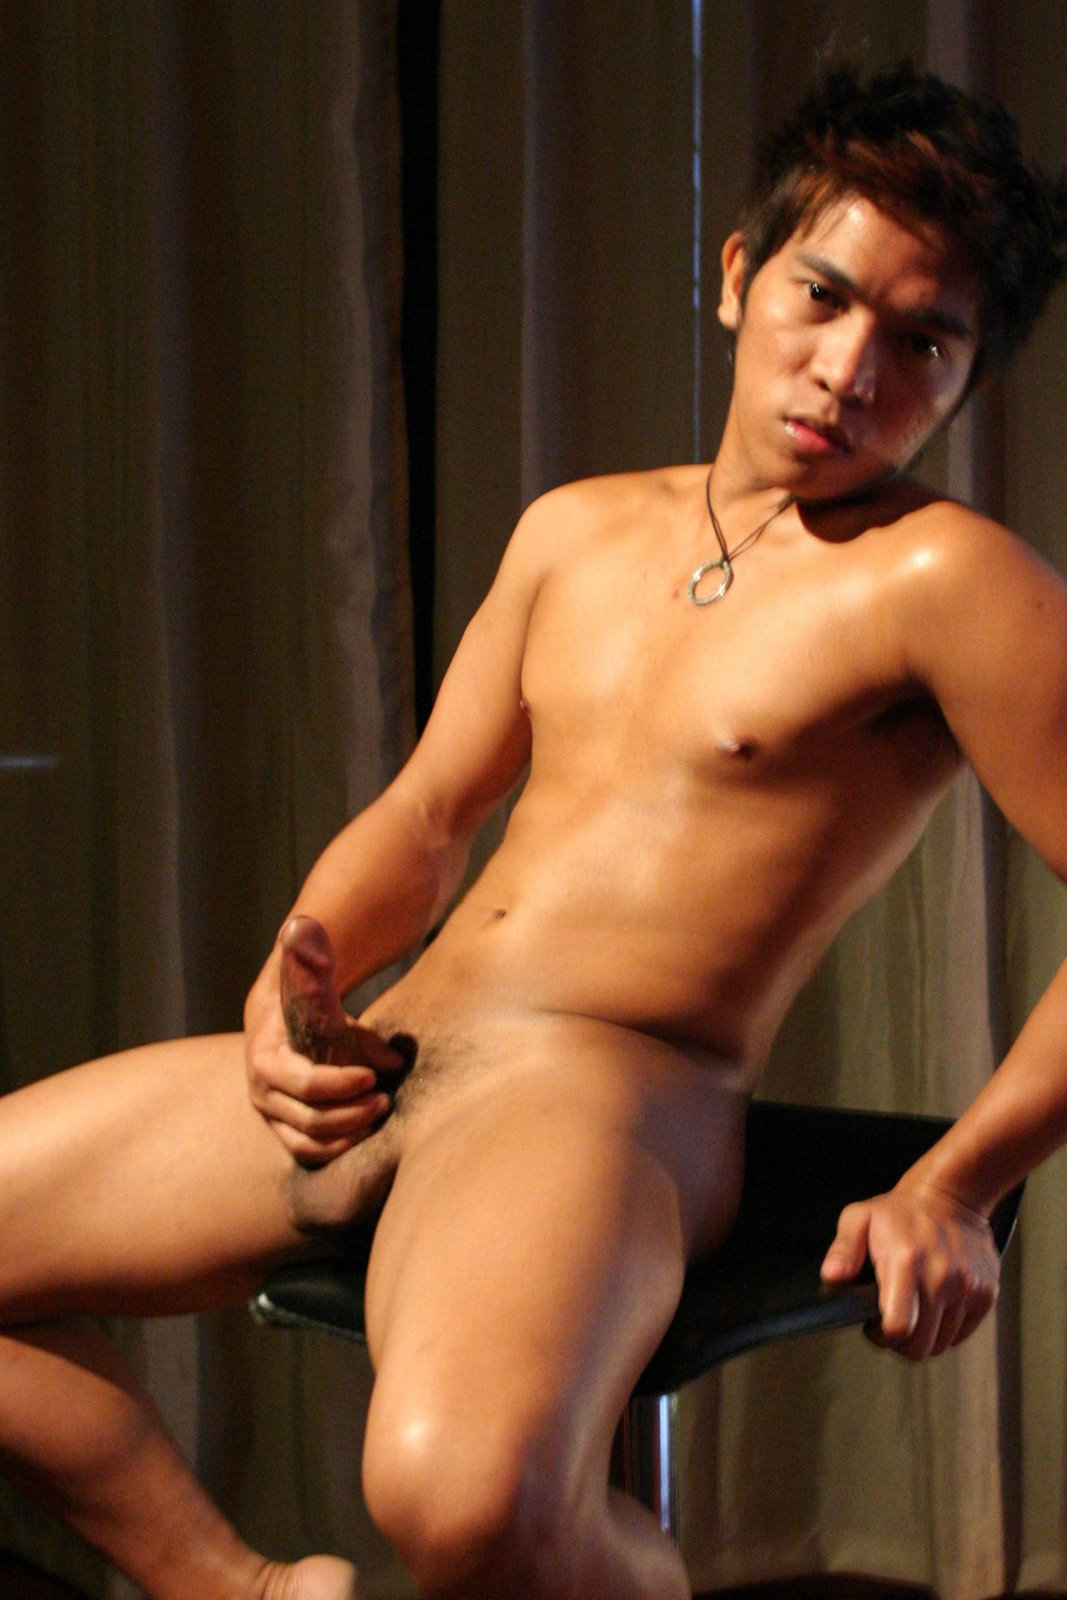 Pinoy nude man sex cam